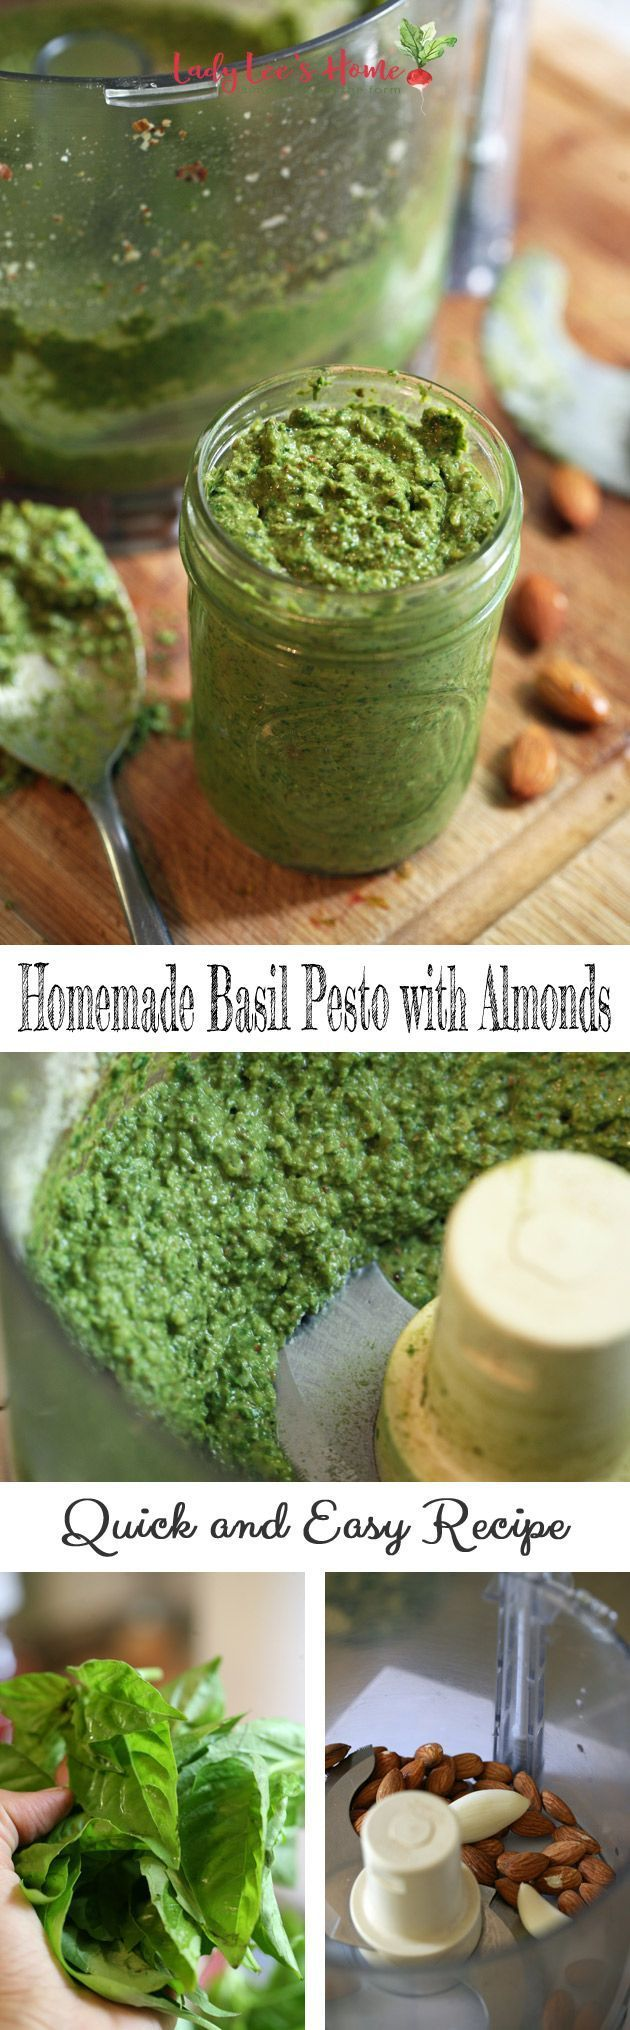 We have a lot of basil in the garden this year, so I am making pesto! We eat it fresh or I freeze it for later. Here is an easy recipe that uses almonds instead of pine nuts to make it more affordable. #LadyLeesHome #Pesto #healthyfood #easyrecipes #basil